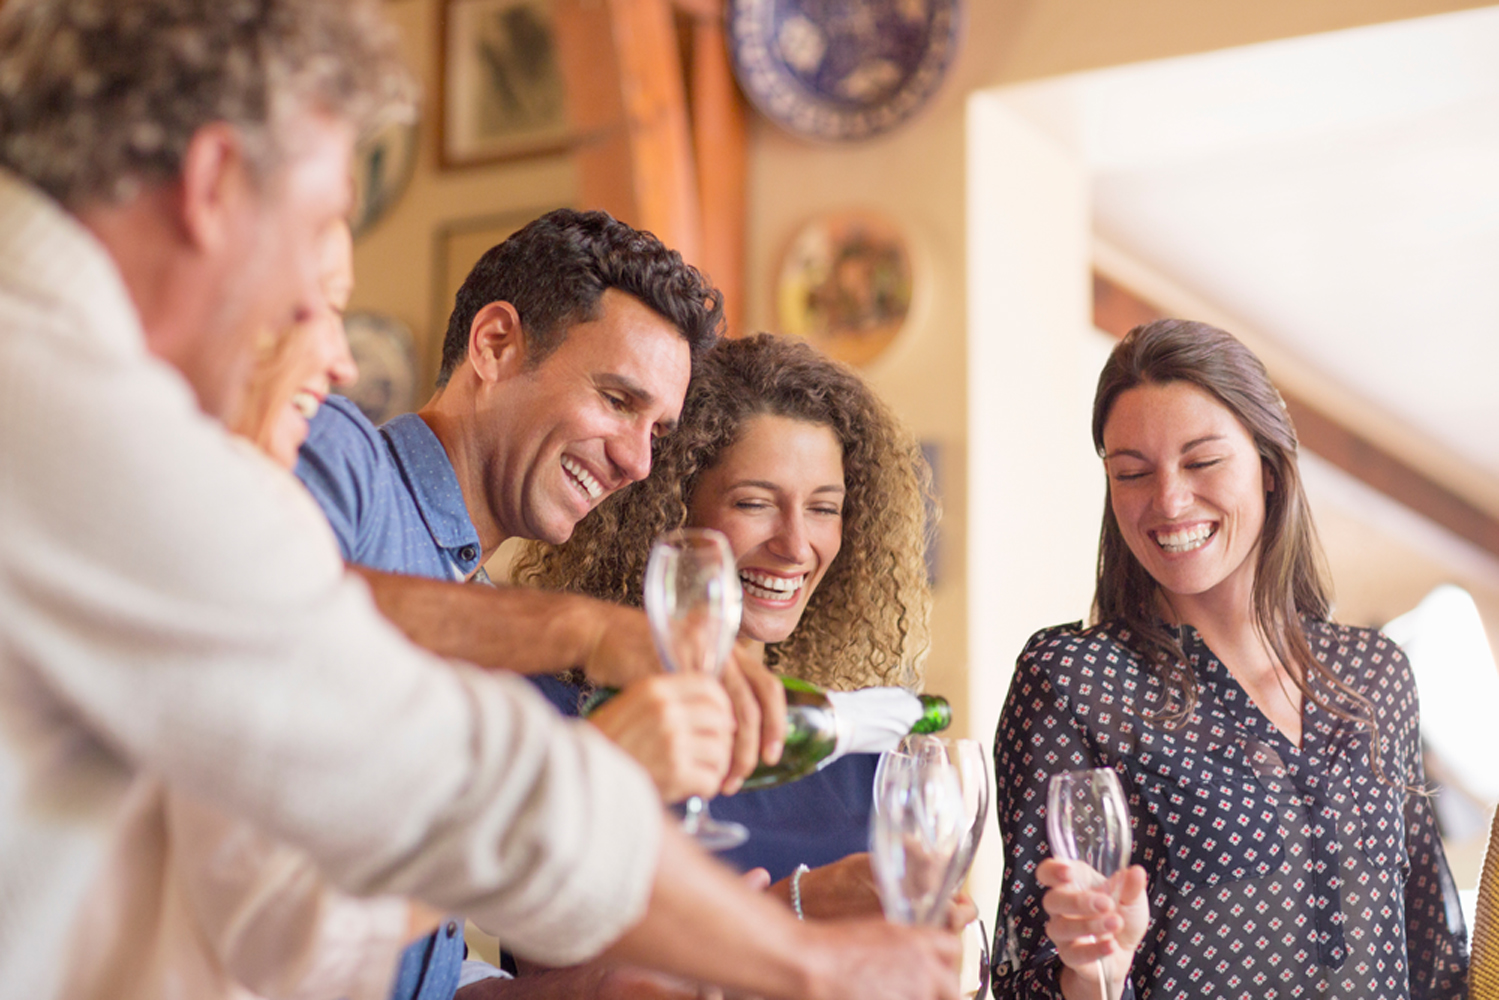 Man pouring drinks to family membersImage downloaded by Dr. Andreas Erber at 7:00 on the 19/12/18